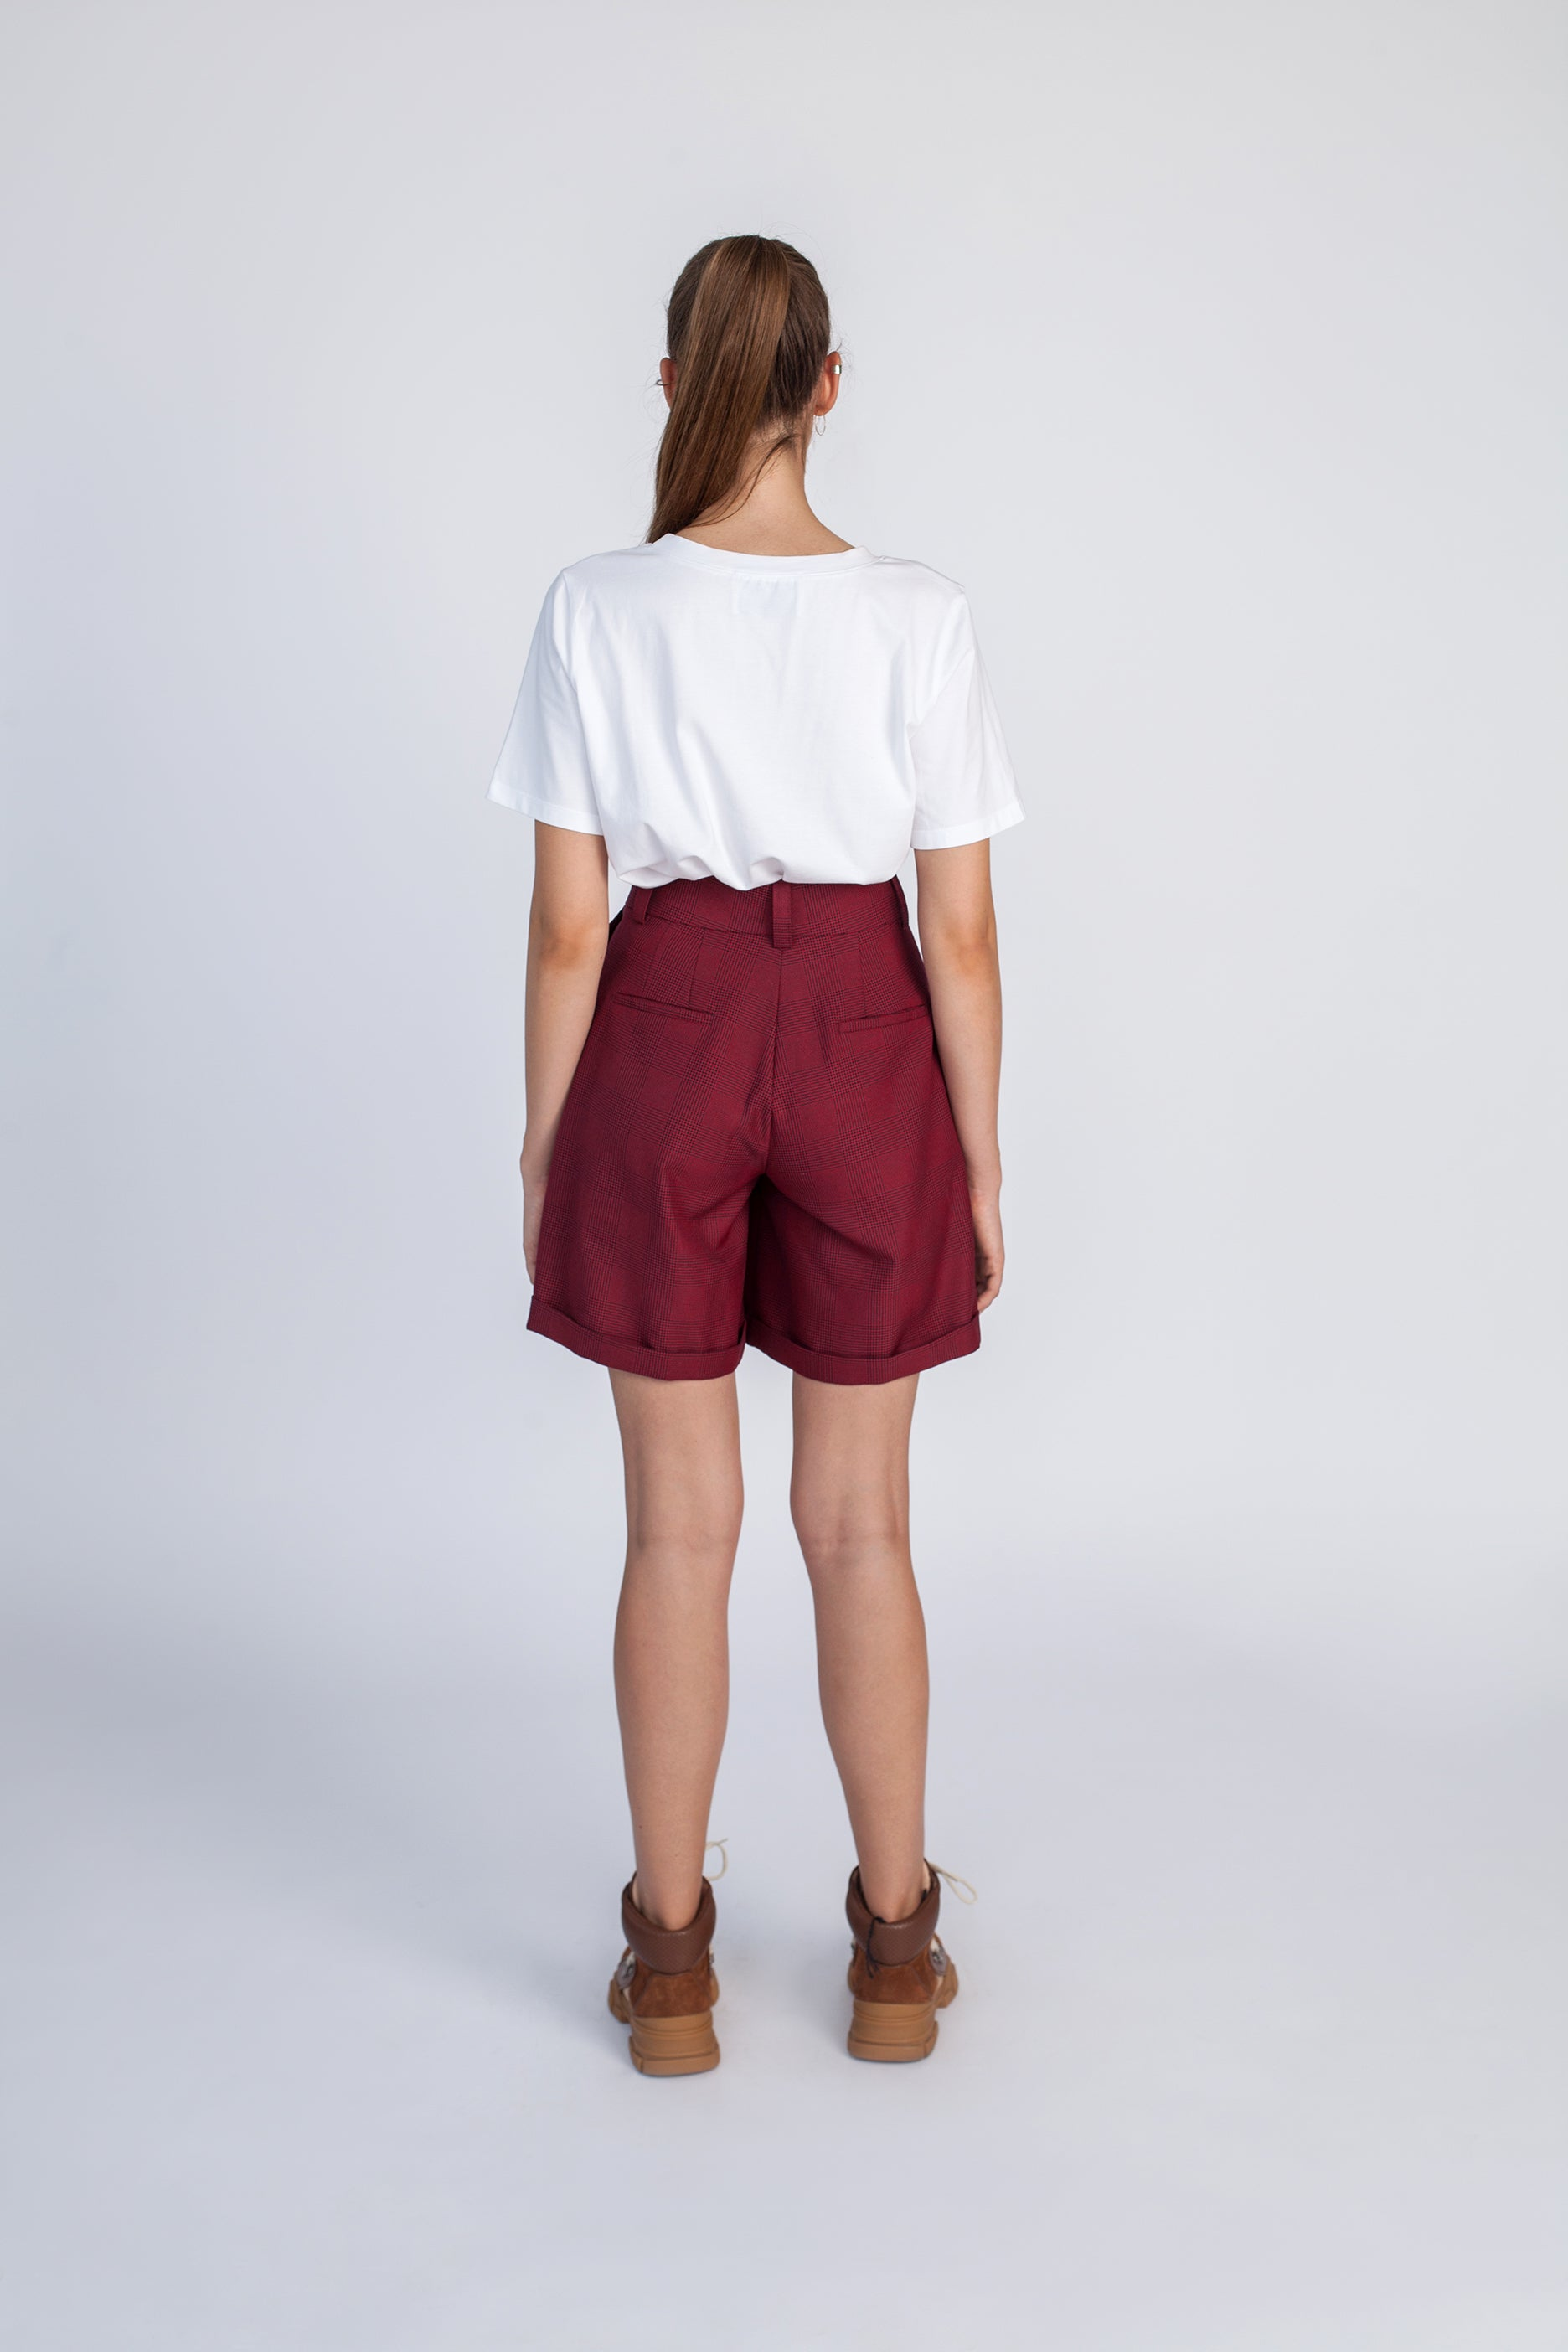 Le SLAP | Burgundy tailoring shorts